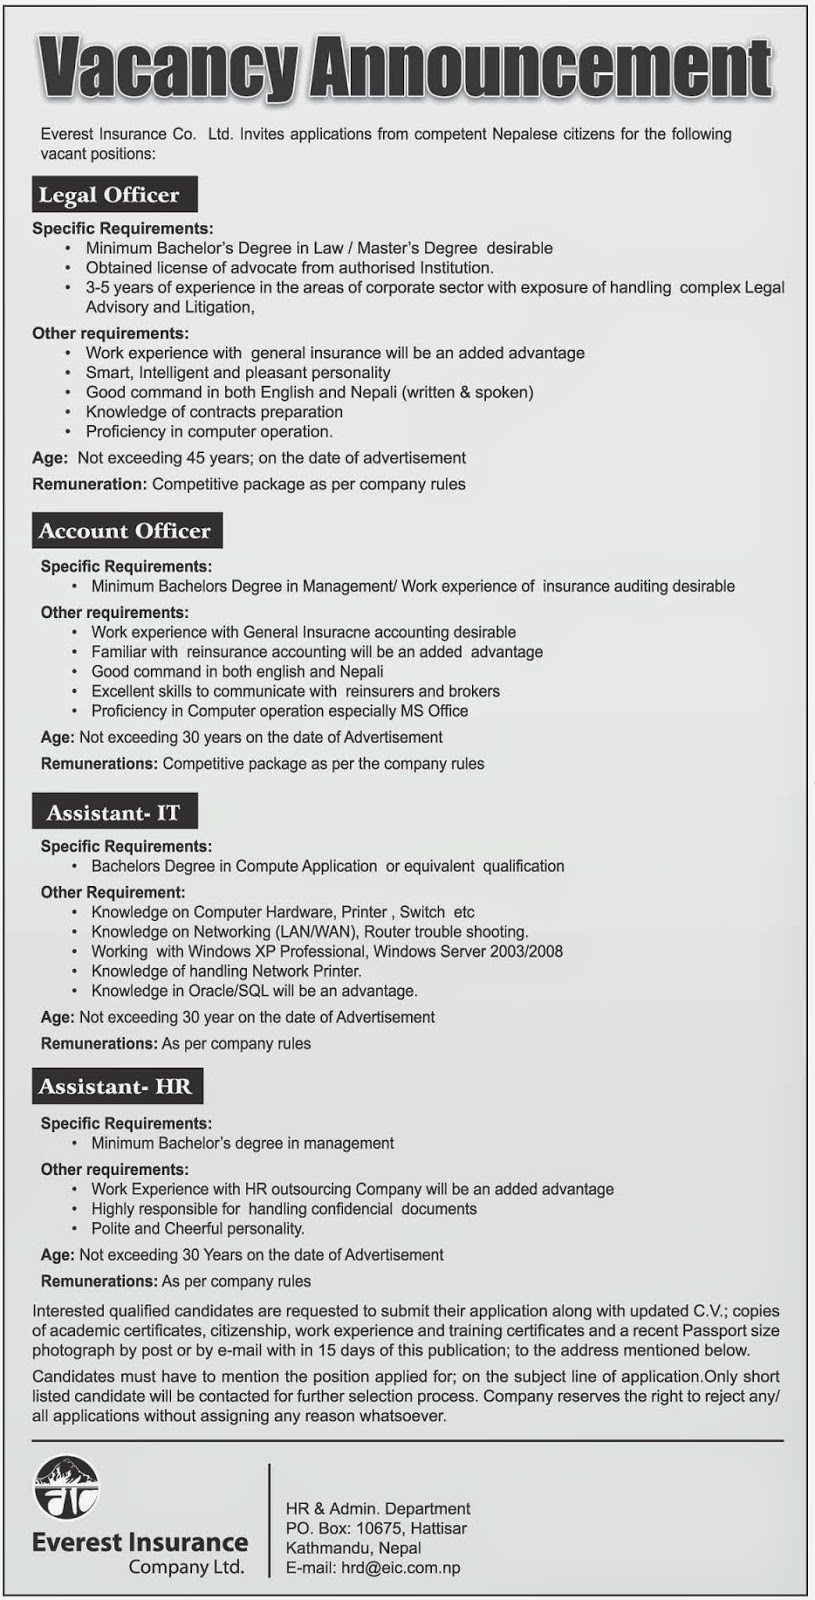 Career in Insurance :Vacancy announcement from Everest Insurance